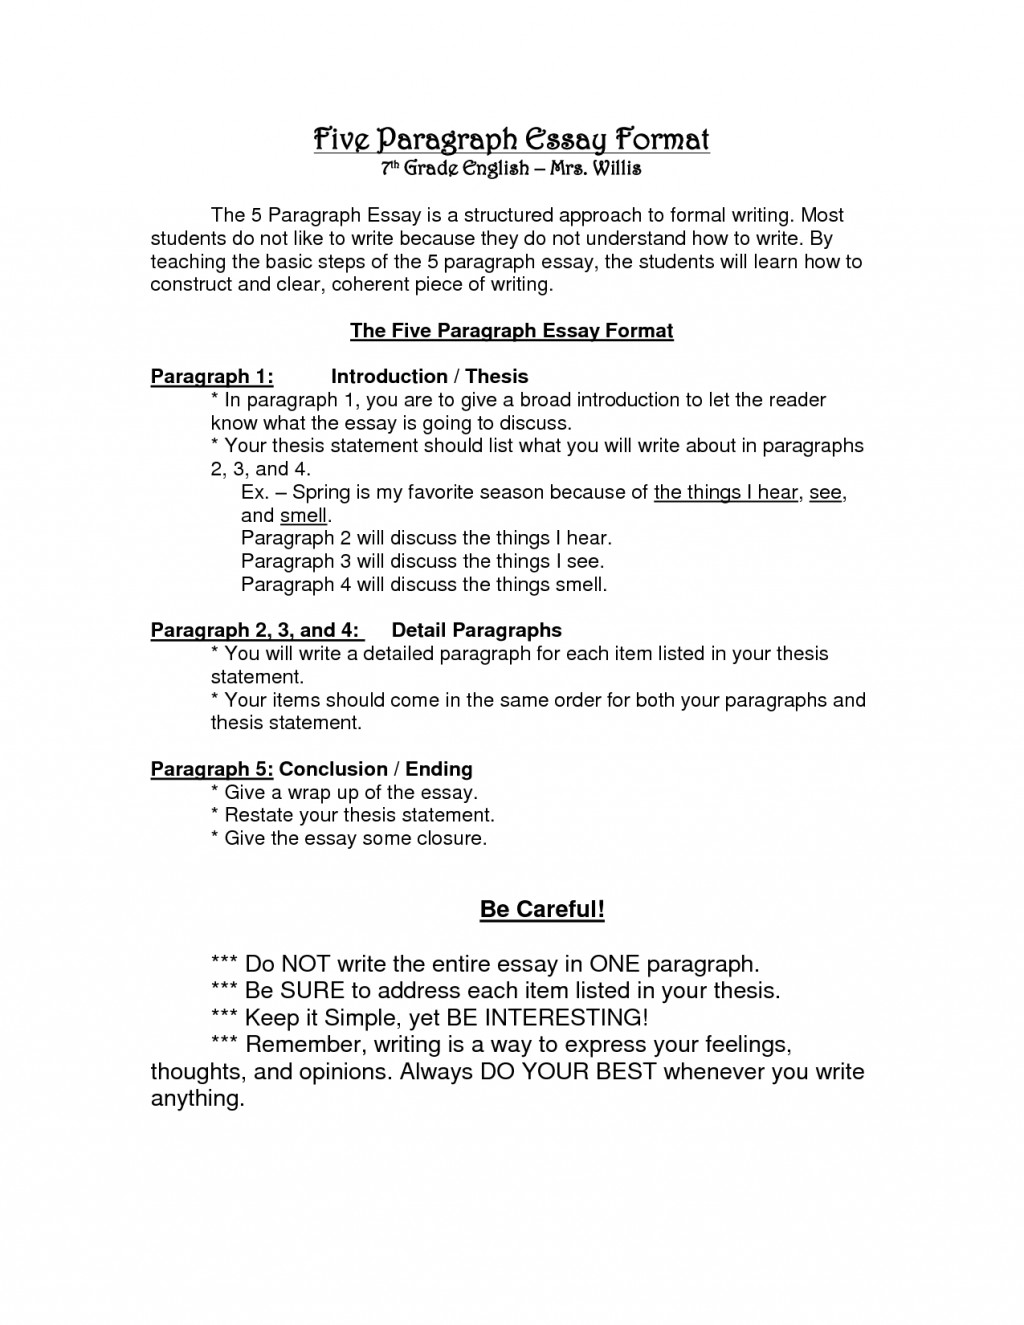 025 Paragraph Essay Outline Template Formats 96536 Fearsome 5 Persuasive Free Large